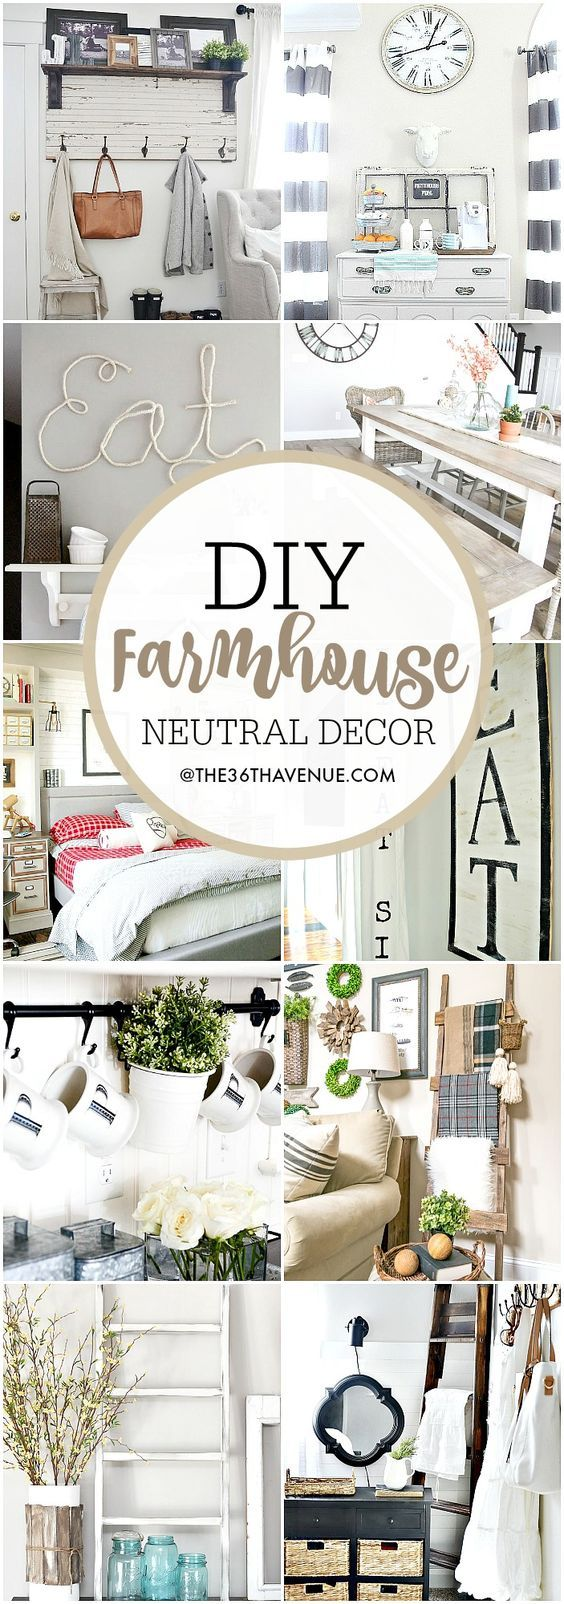 Farmhouse DIY Decor Ideas - Over 100 DIY Farmhouse Home Decor Ideas that are perfect to give your own home the charming and classic style of country living with a modern touch!: